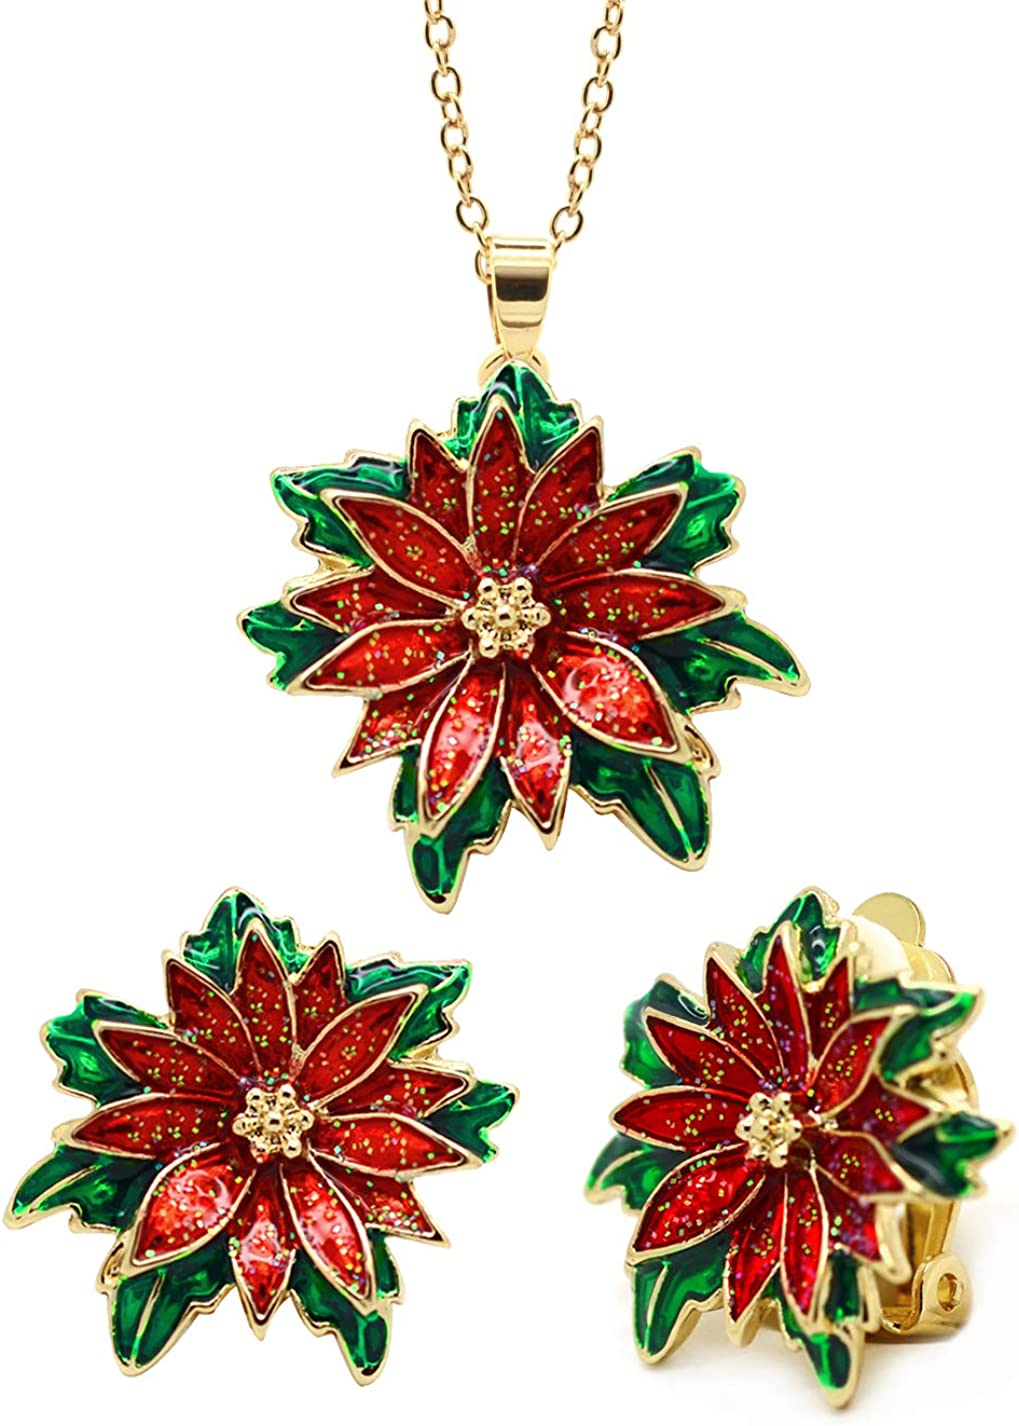 Sparkly Bride Christmas Jewelry Set Red Poinsettia Women Fashion Pendant Necklace Clip on Earrings Gold Plated, 16+2in